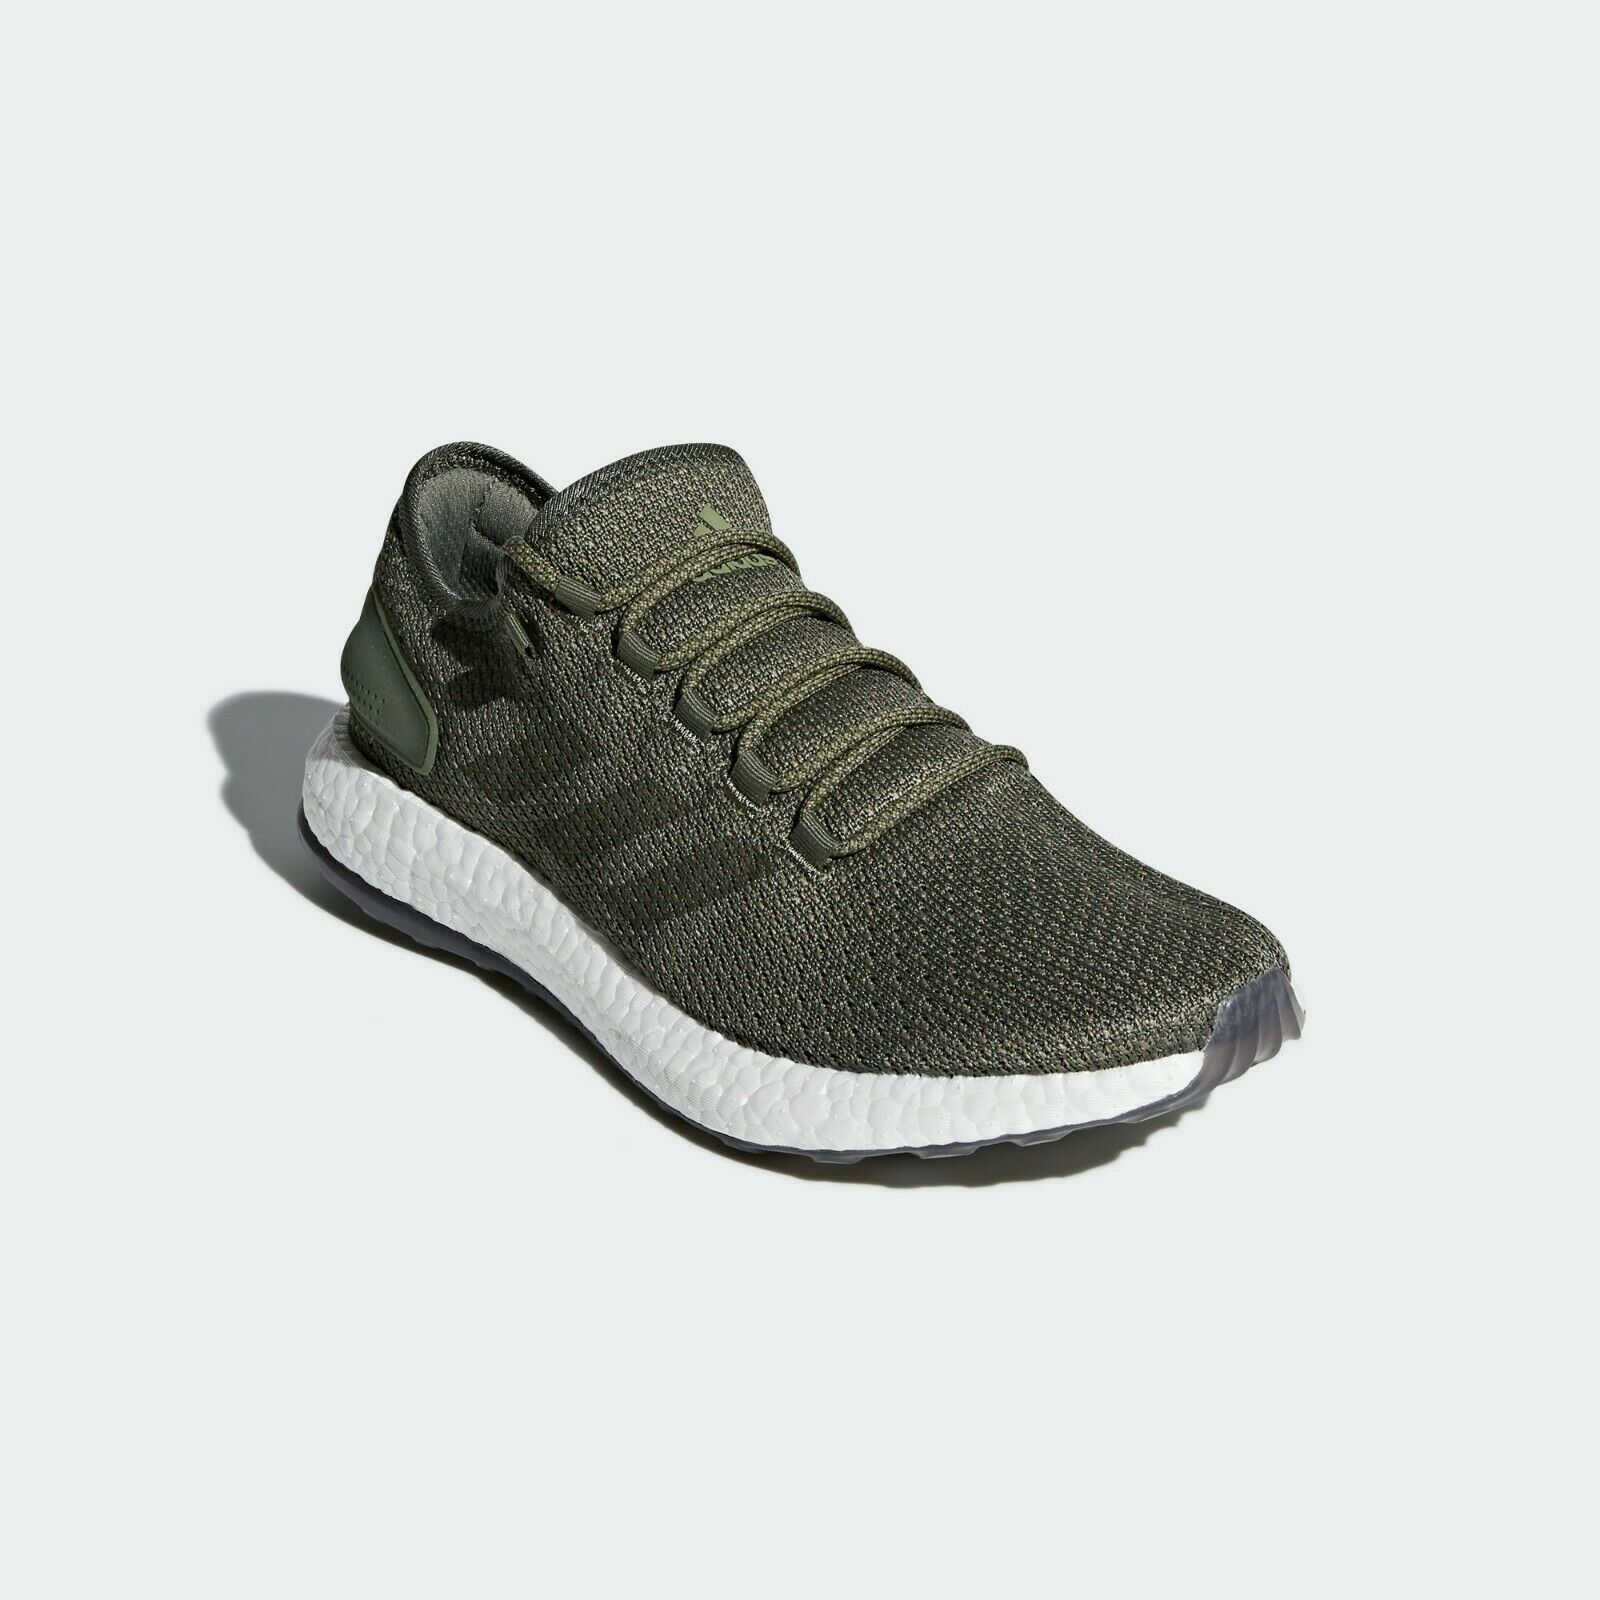 Adidas Pureboost Clima (BY8896) Running shoes Gym Training Sneakers Trainers